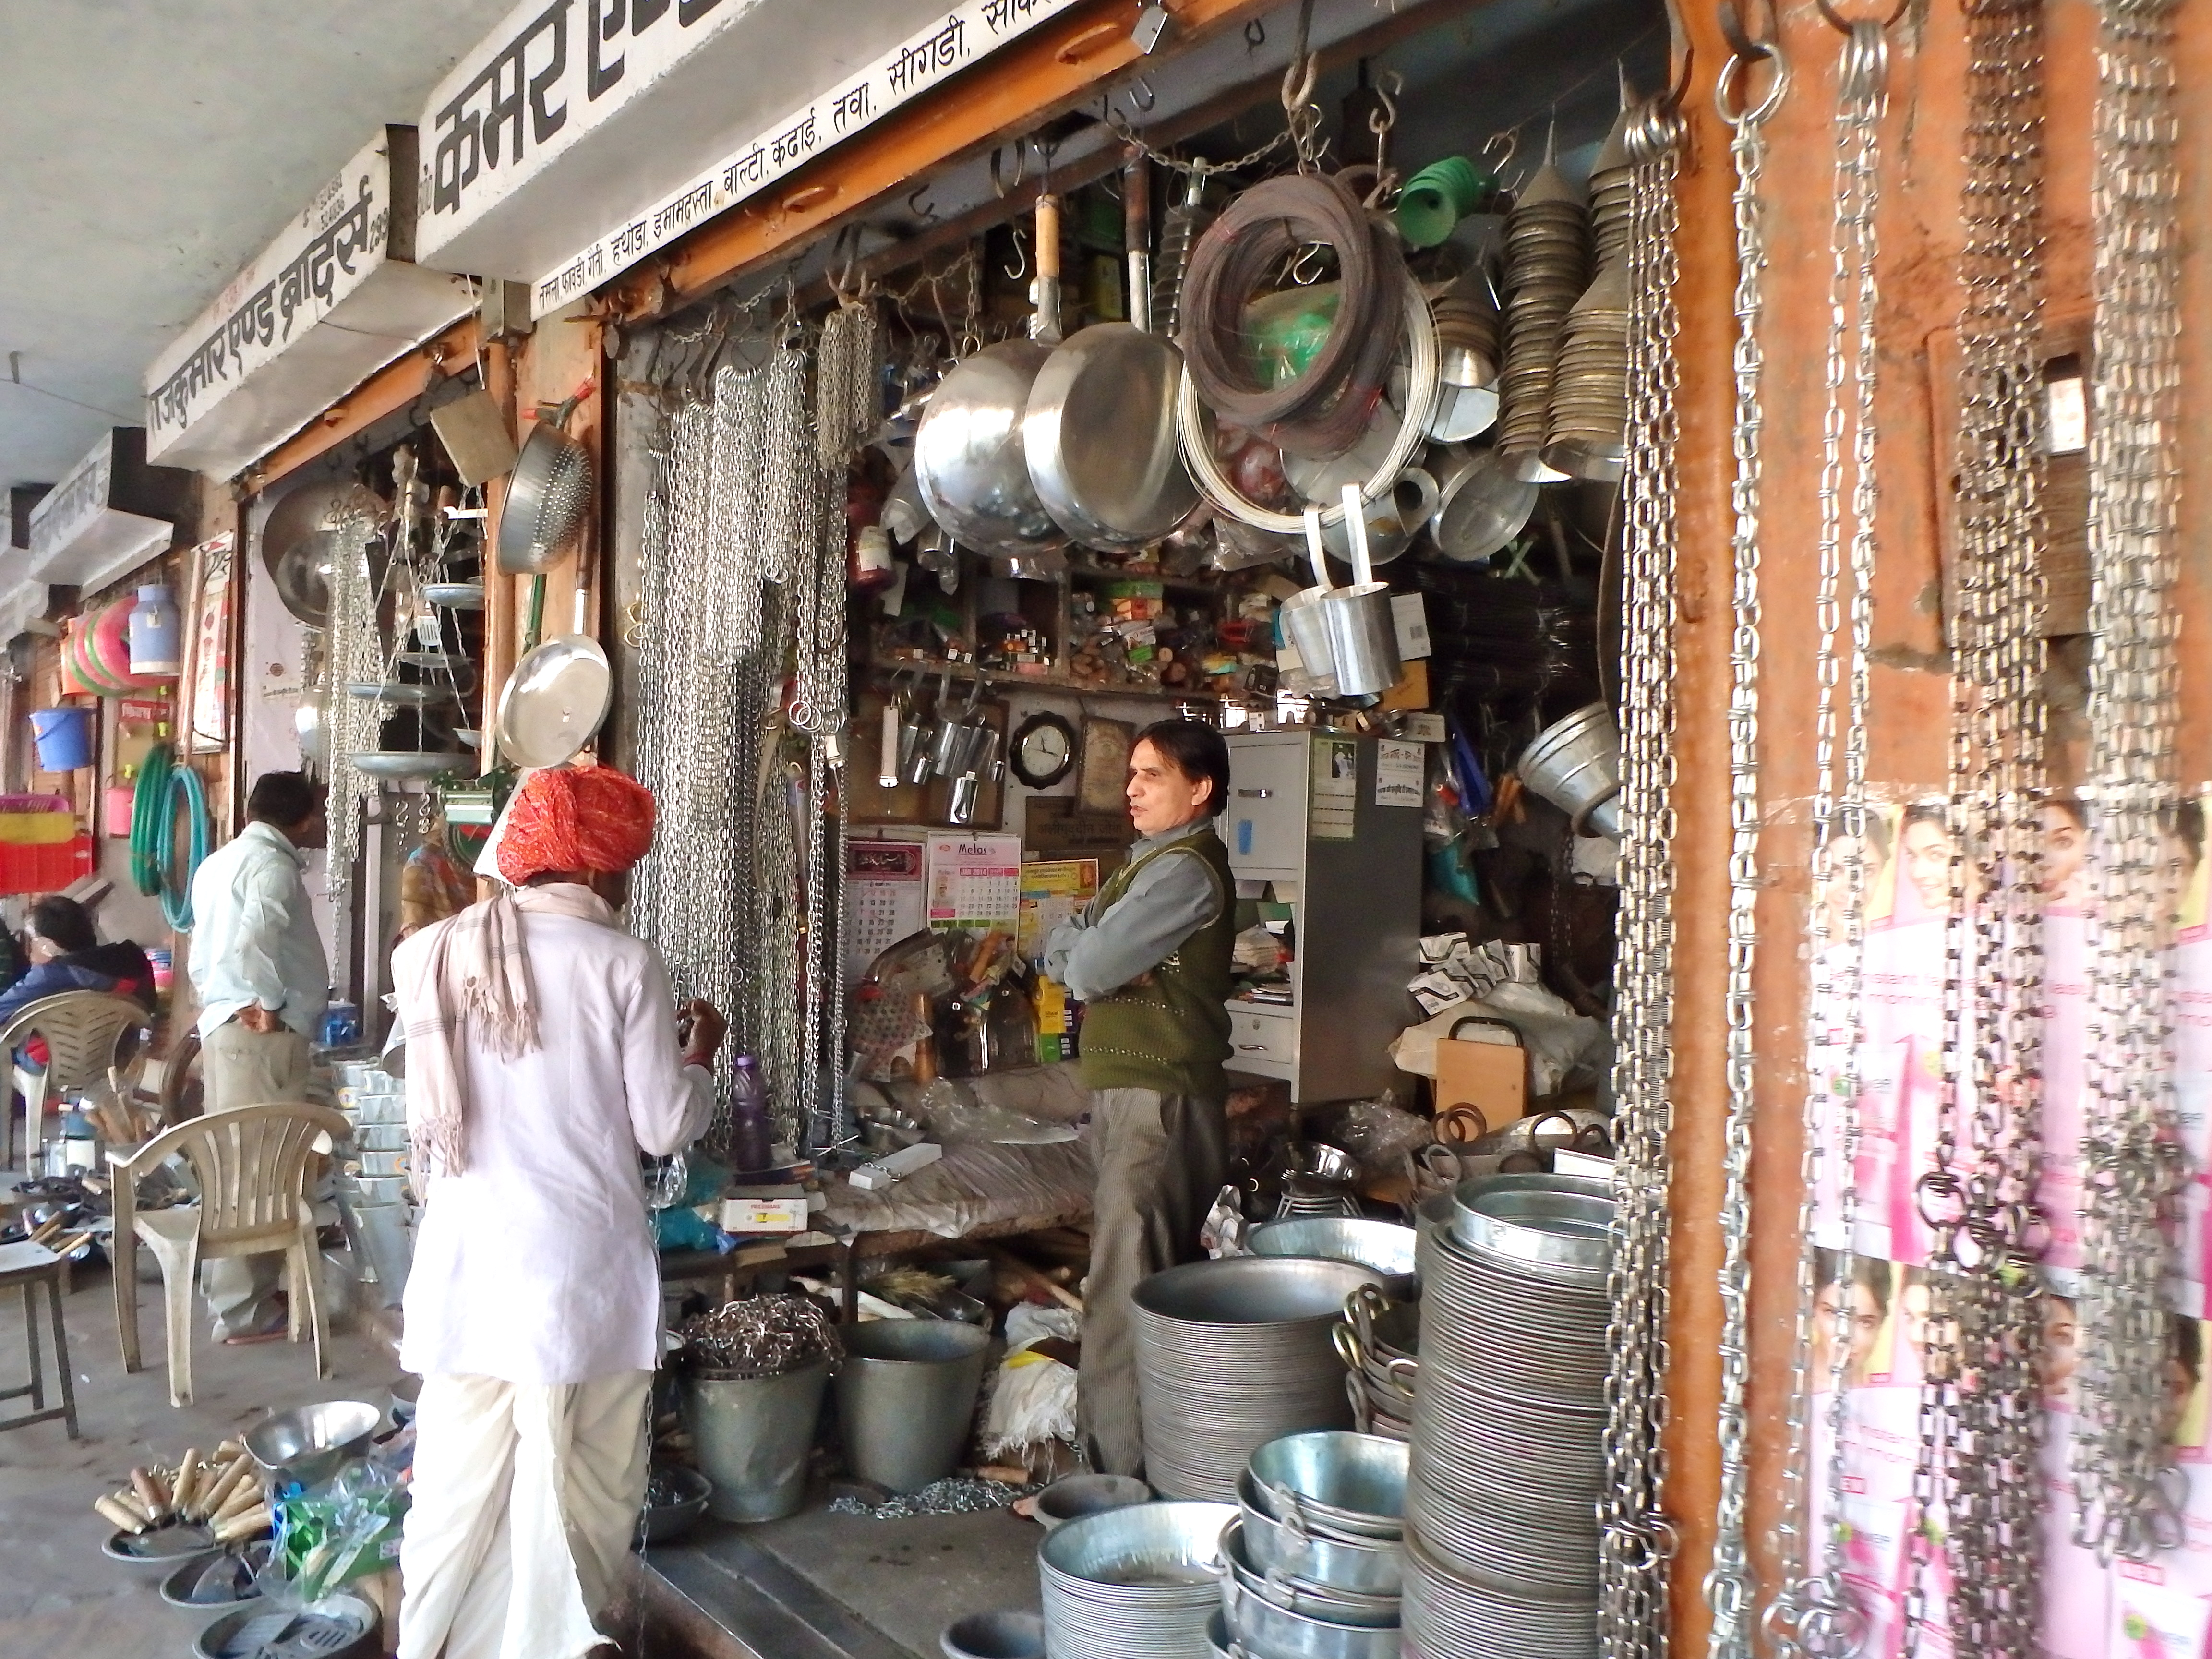 day trip to jaipur things to do in jaipur how to see jaipur in one day